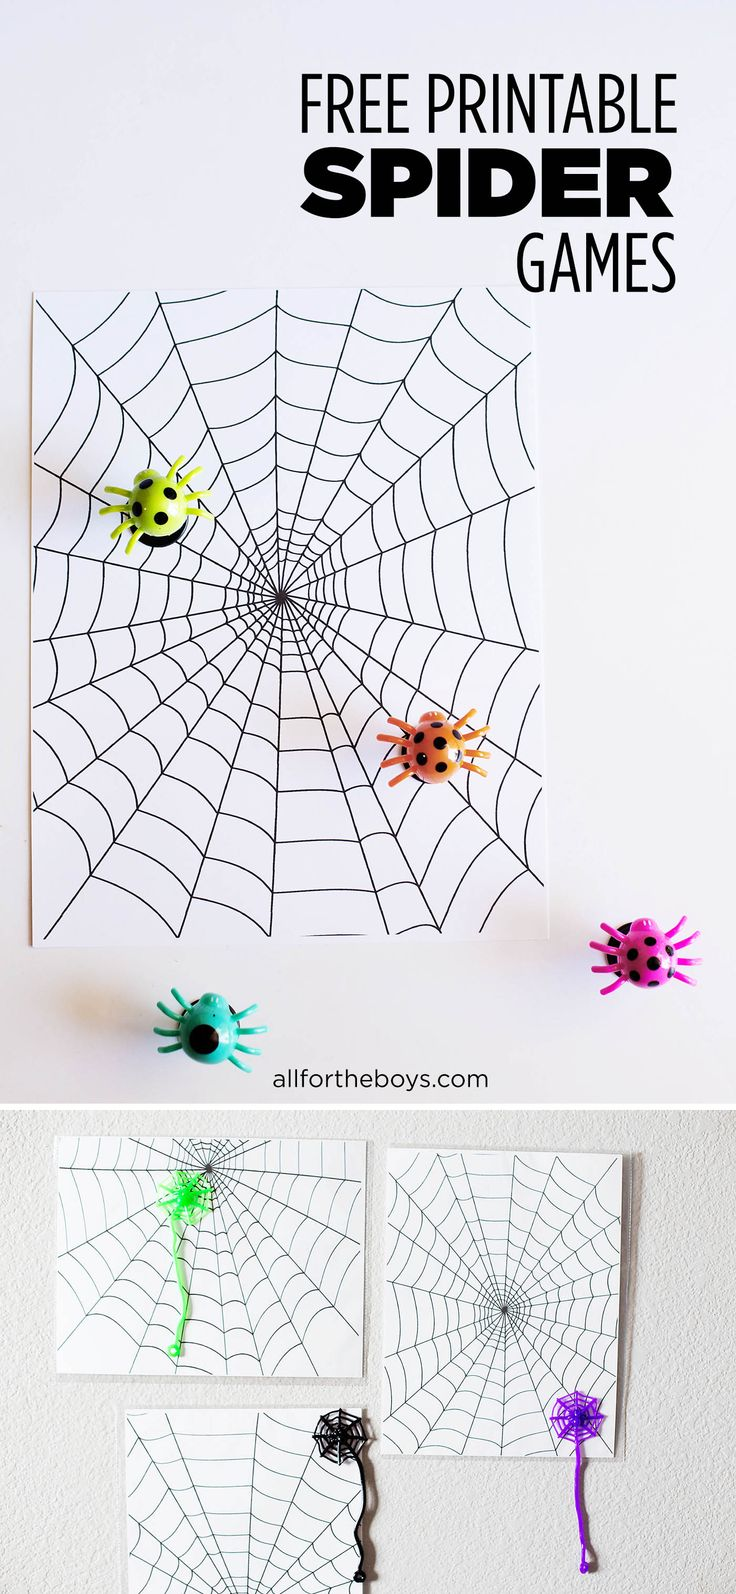 free printable spider games - fun for a Halloween party or just to play a fun game on a rainy day